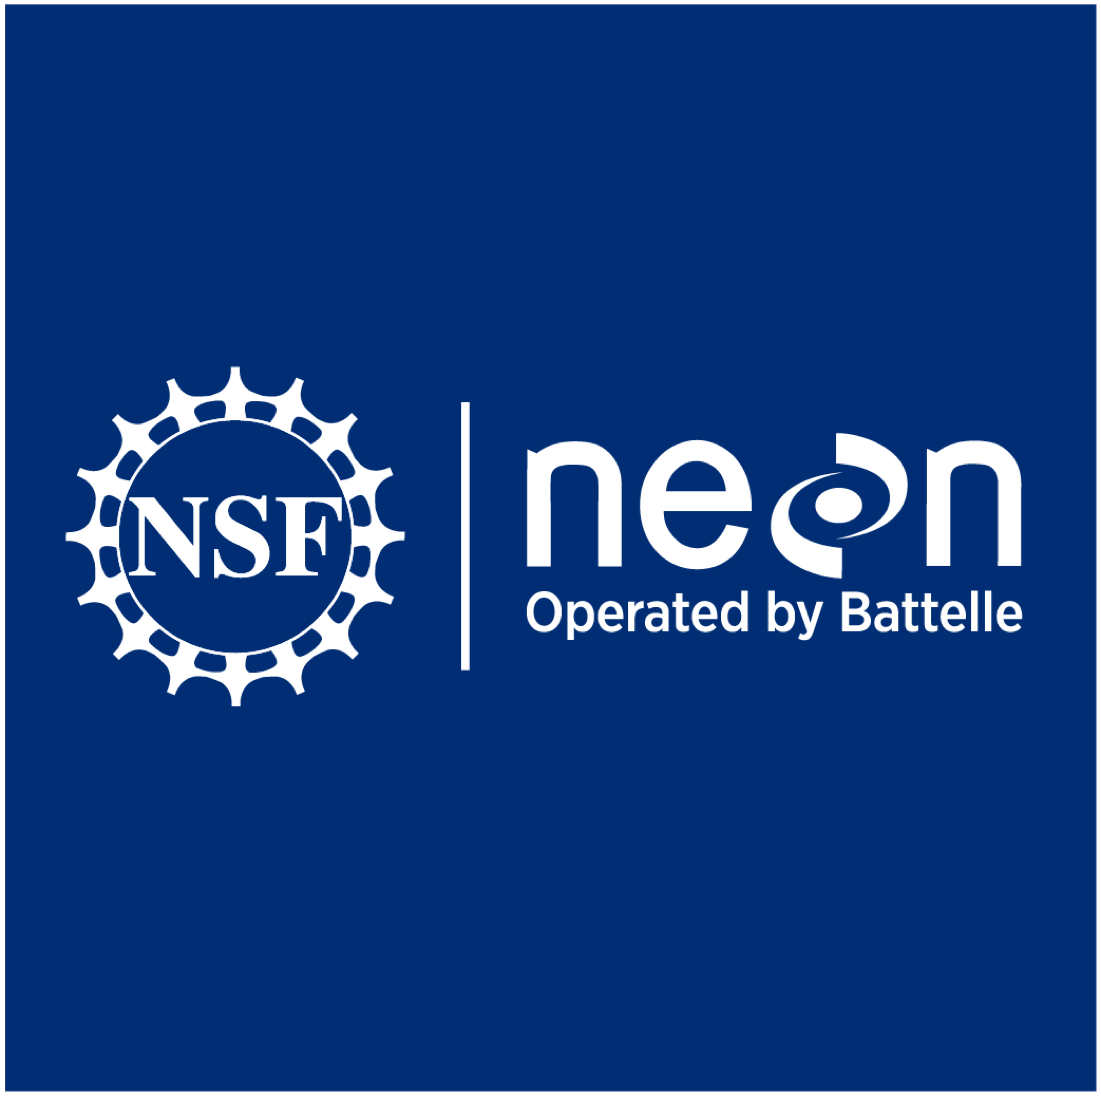 NSF NEON (National Ecological Observatory Network) collaboration logo